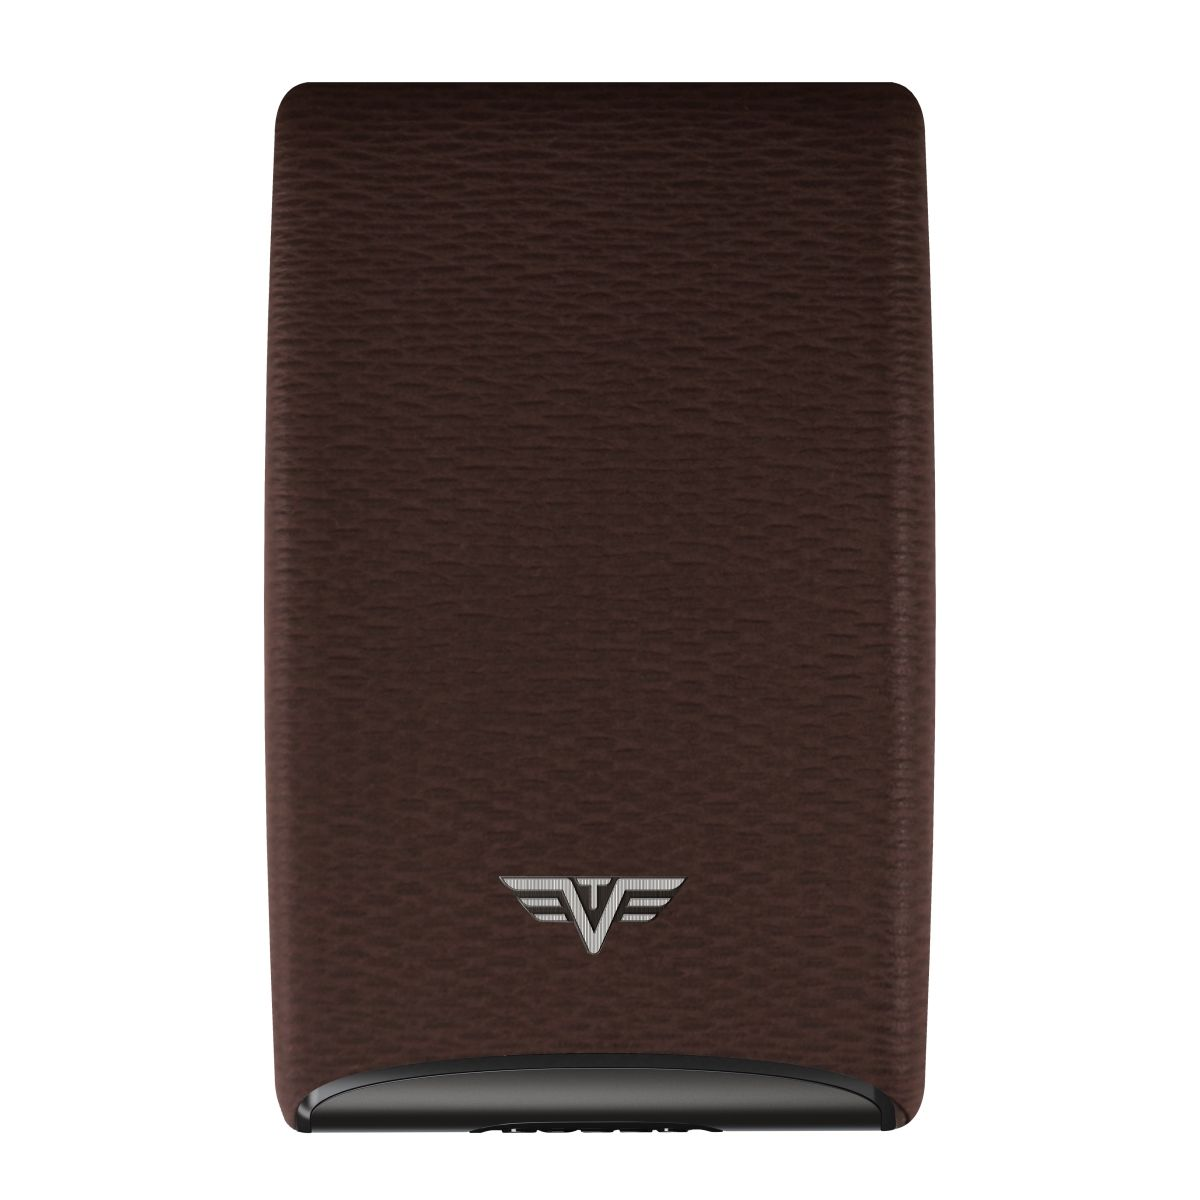 TRU VIRTU Aluminum Card Case Fan Leather Line - Dark Tabacco